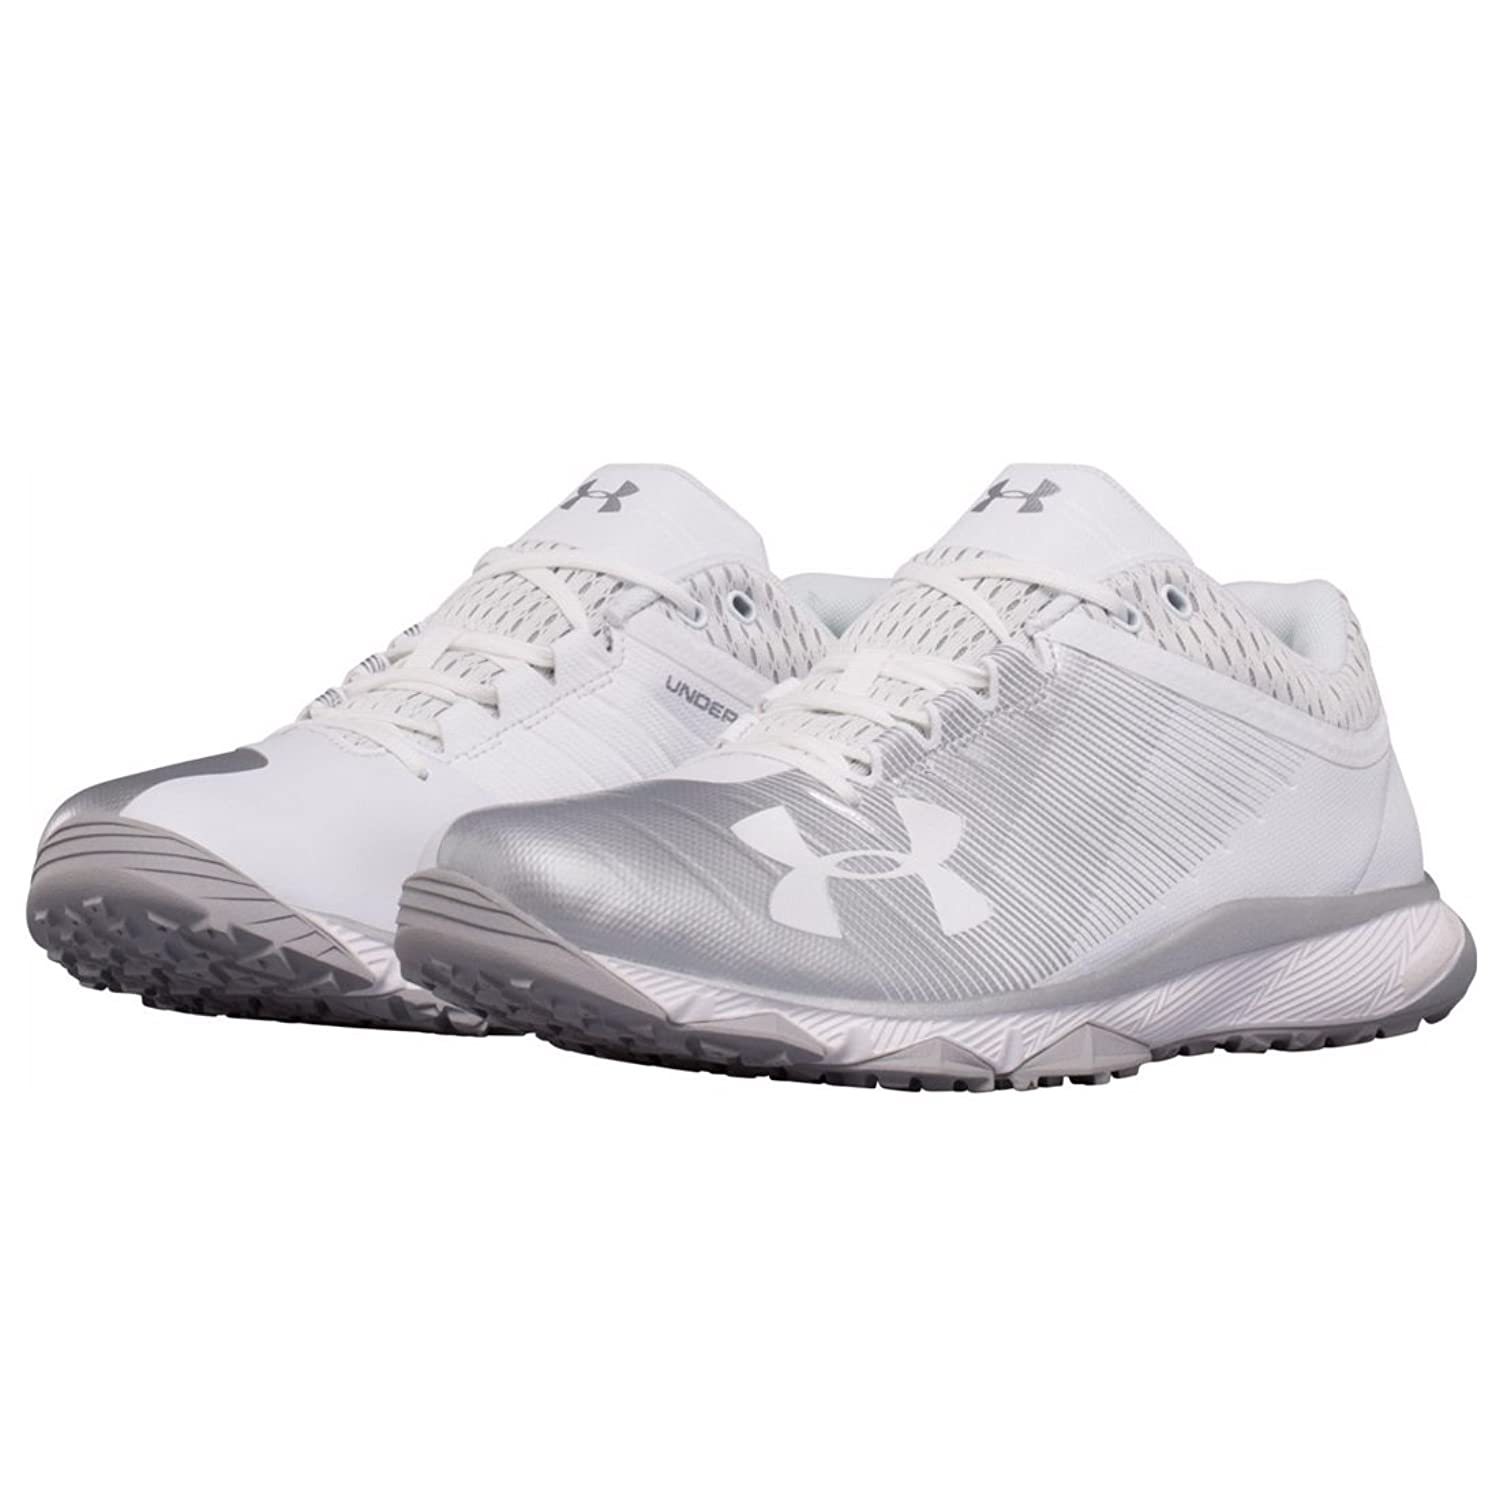 UNDER ARMOUR UA YARD TRAINER シューズ (3000356-100) [並行輸入品] B076282FS4 26.5 cm